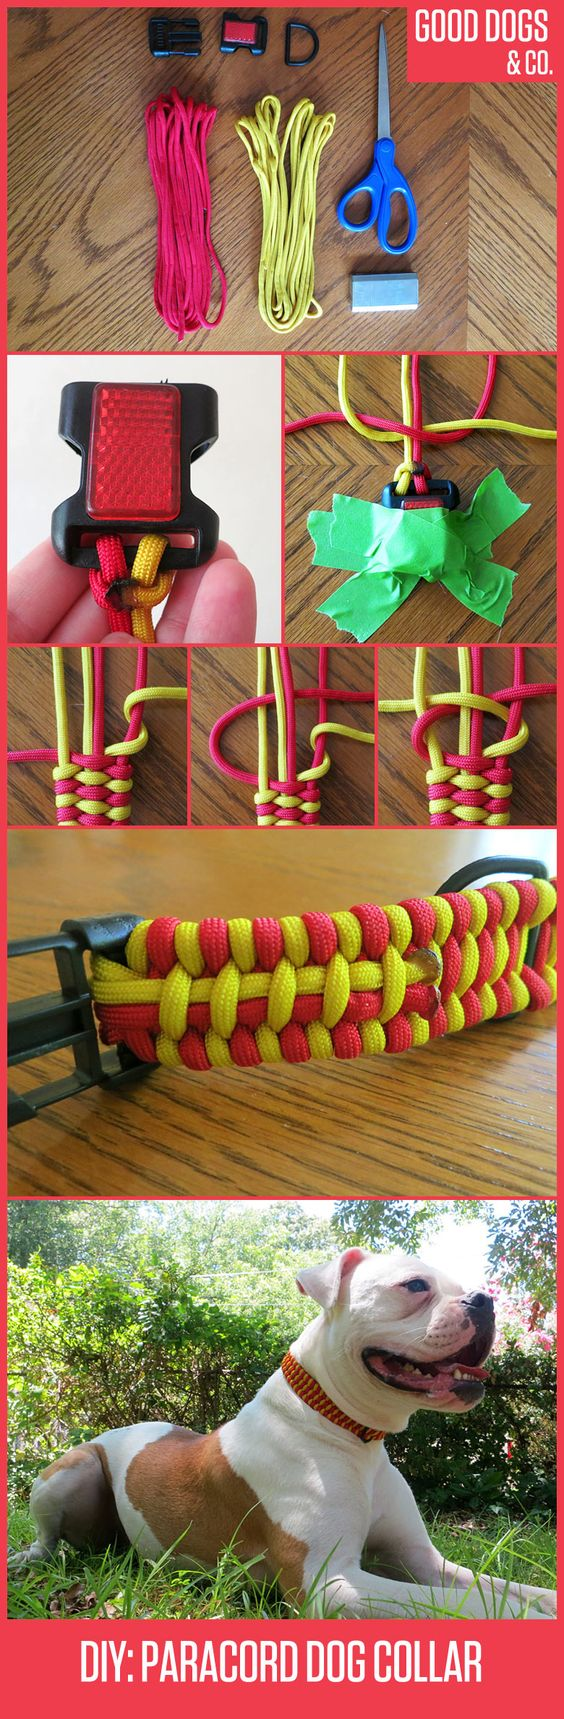 How To Braid A Paracord Survival Collar For Your Dog